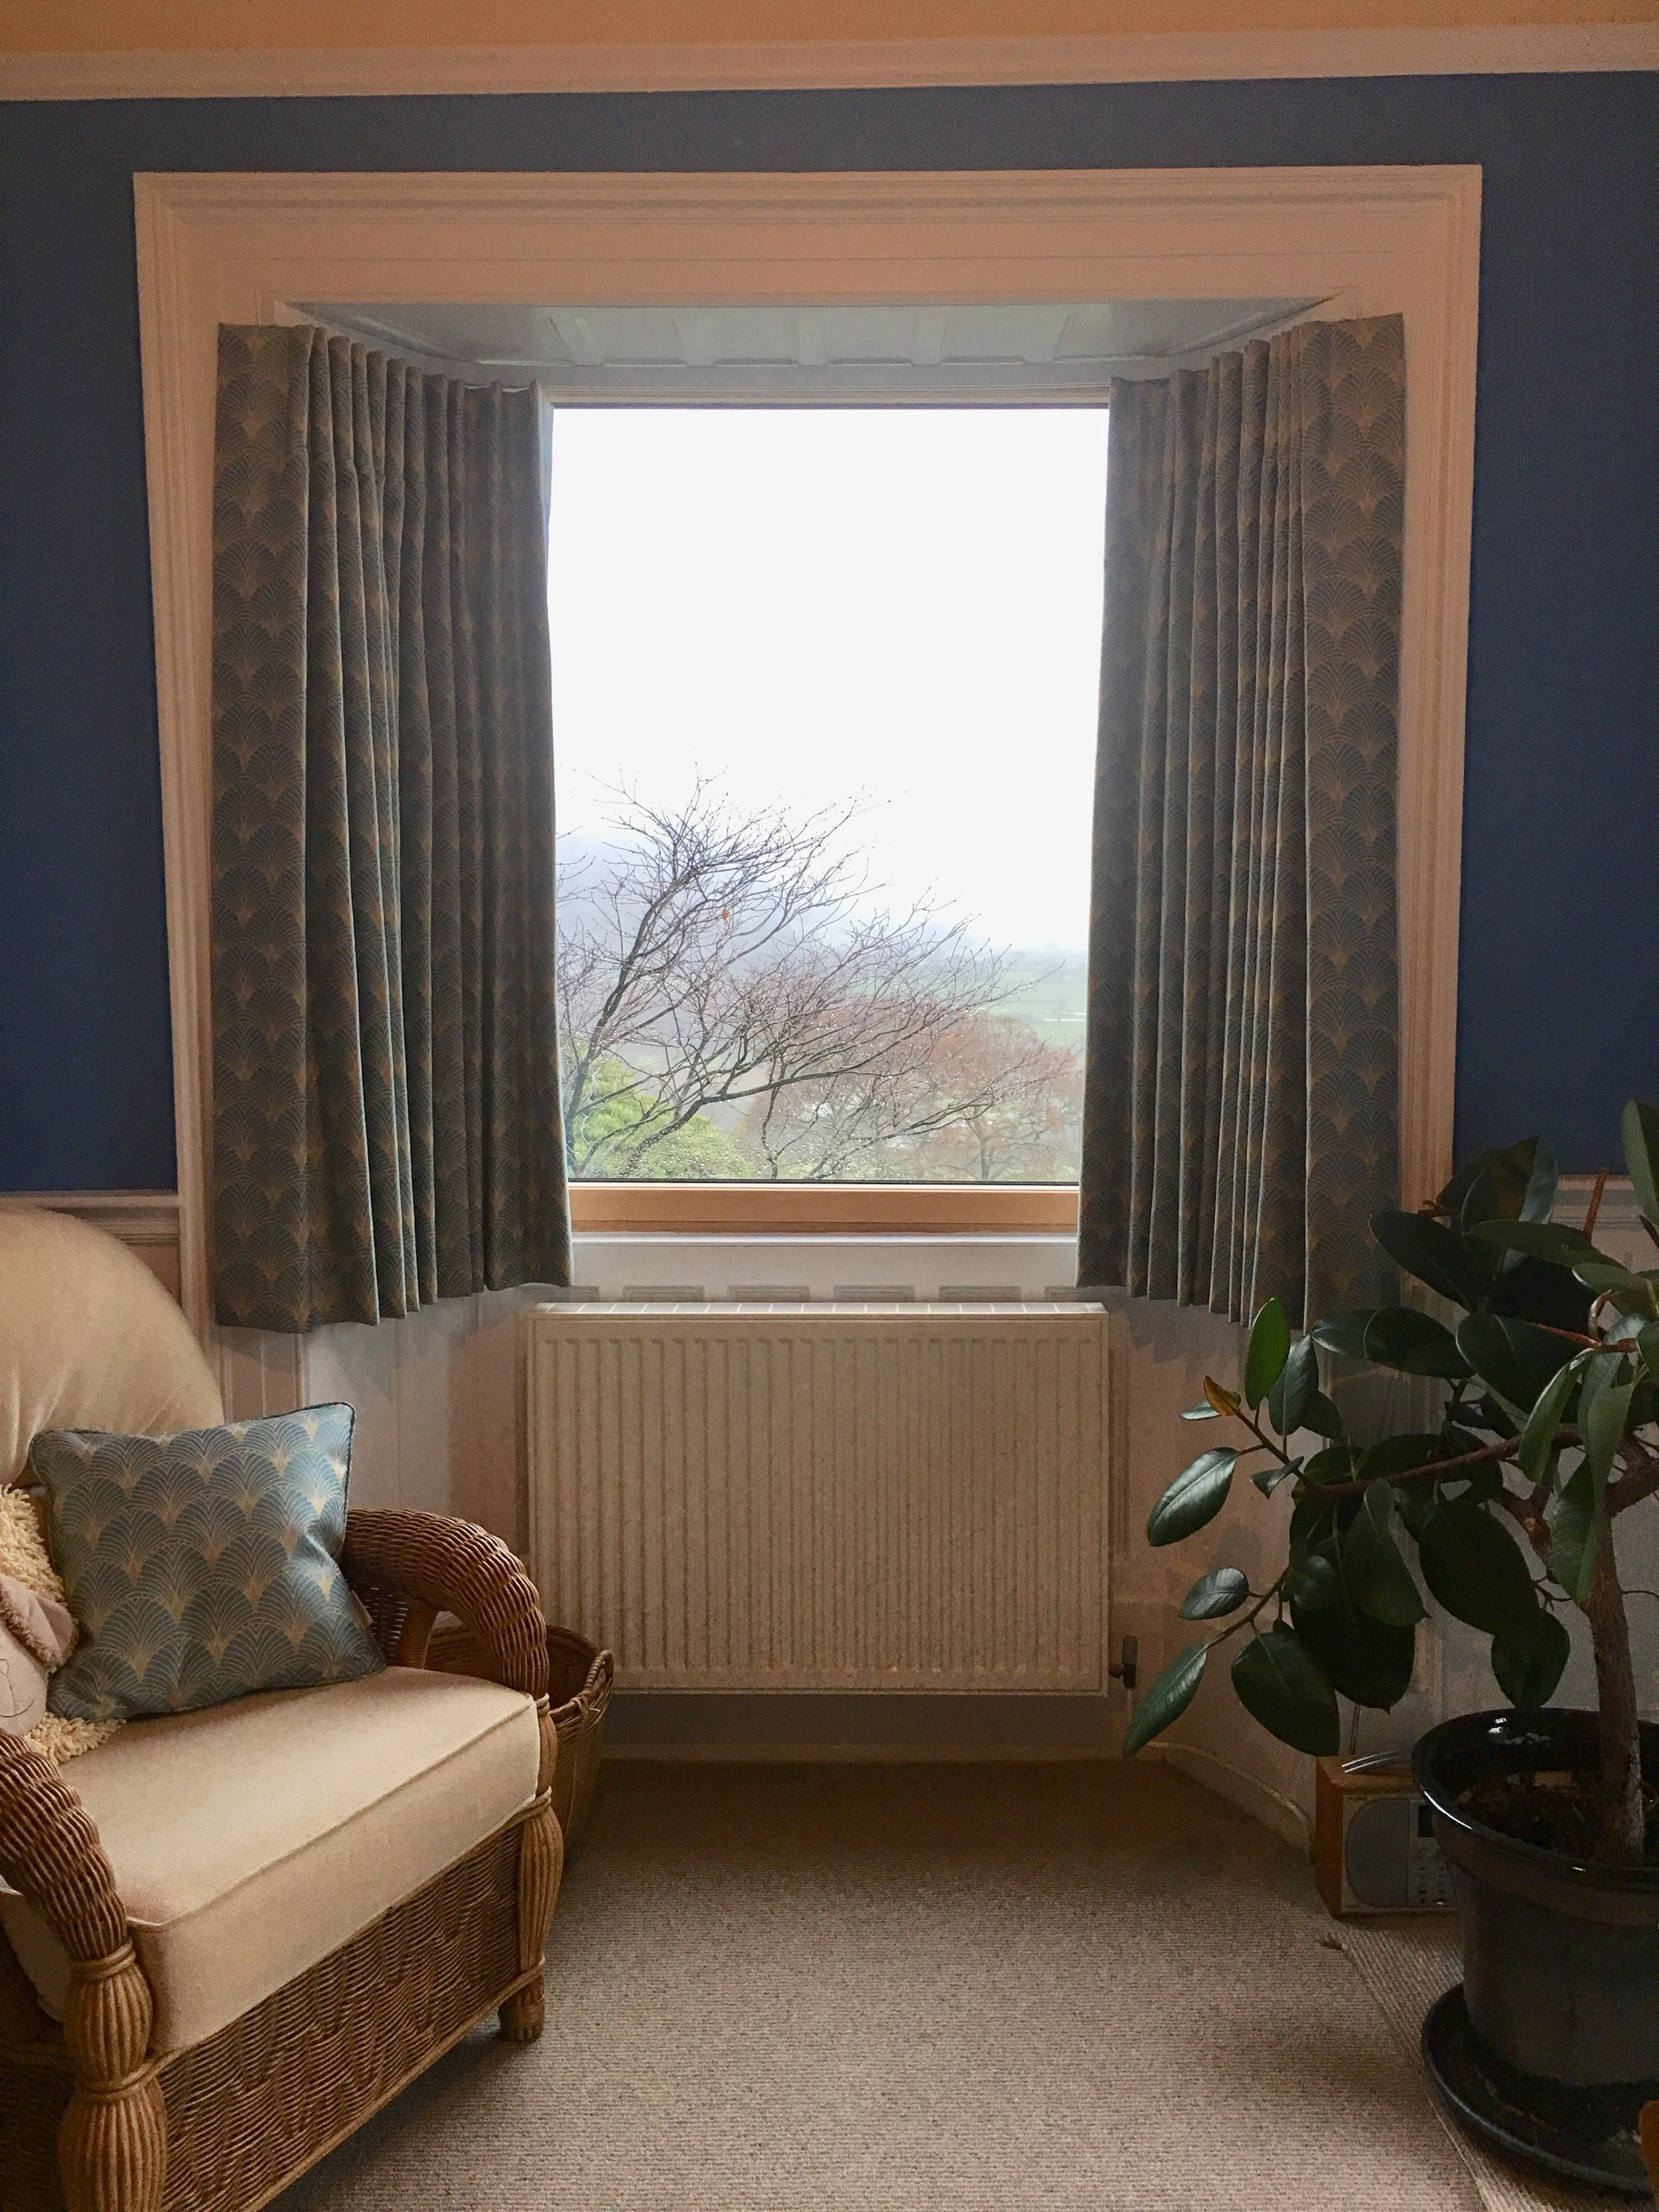 Difficult bay window - shorter curtains so as not to cover the radiator